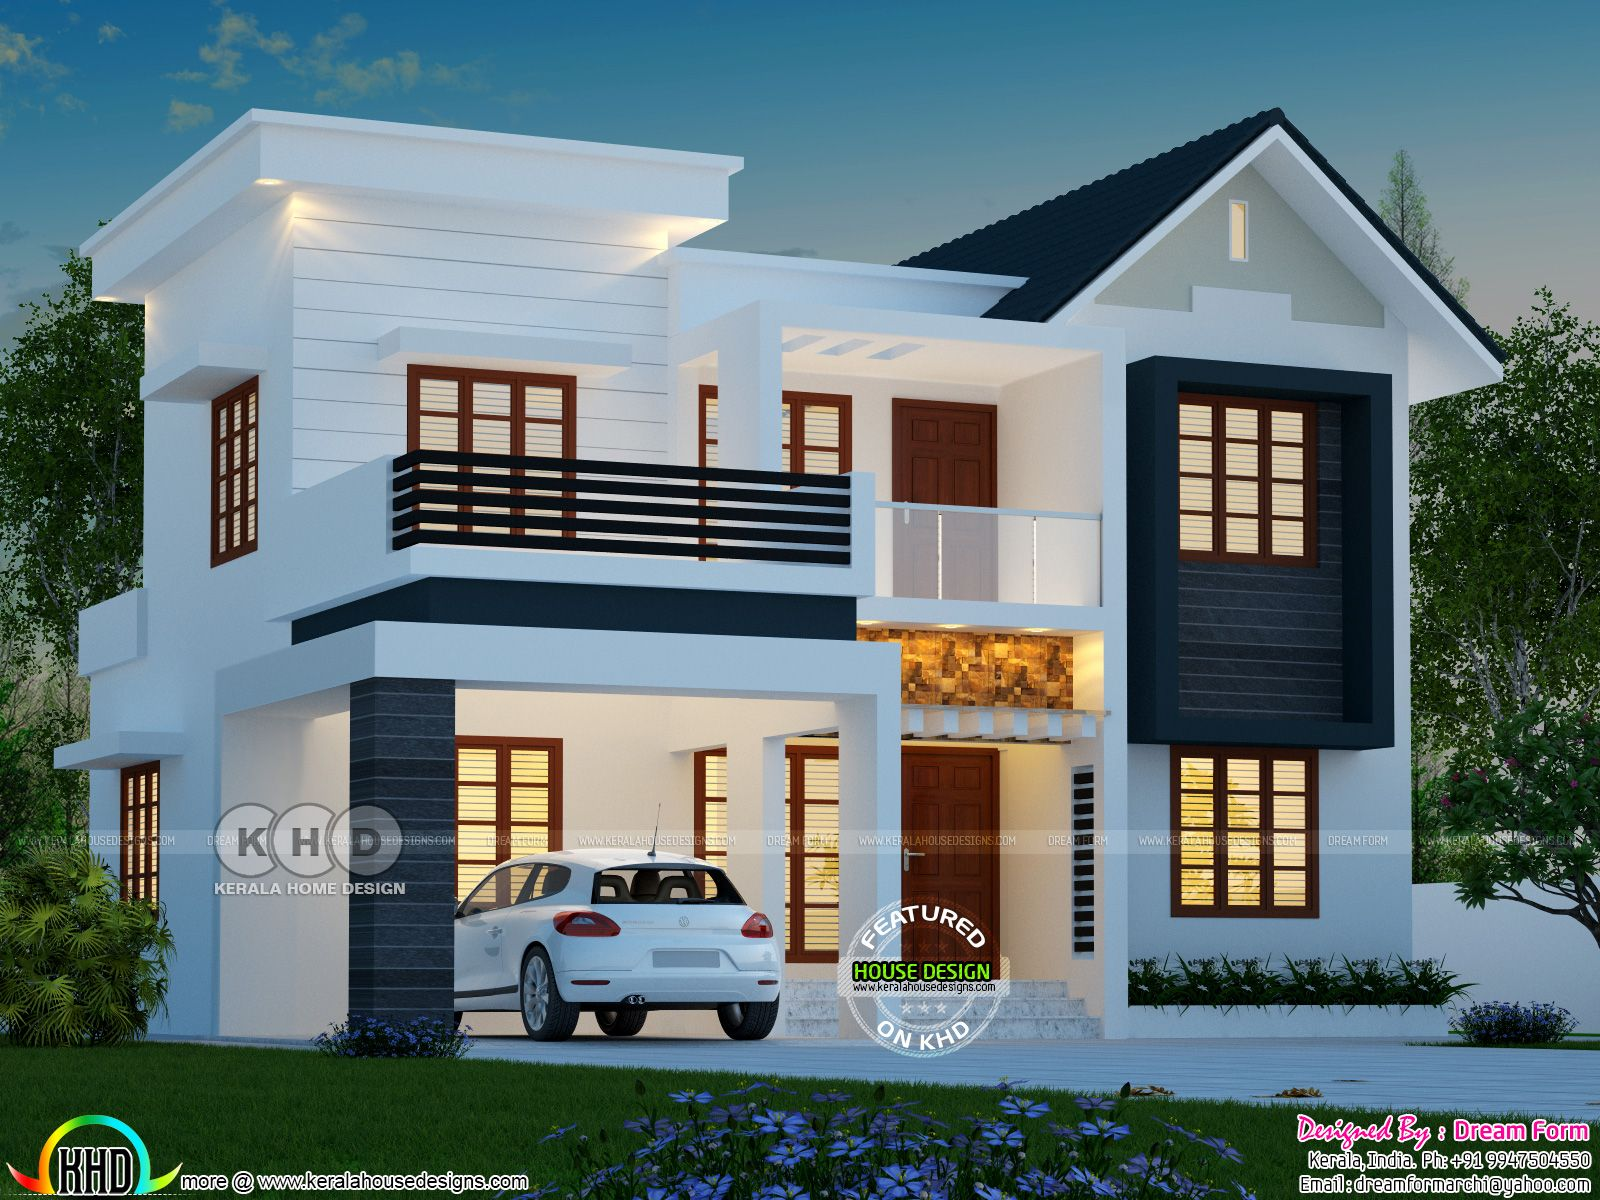 4 Bhk 1763 Square Feet Modern House Plan Kerala House Design Duplex House Design 2 Storey House Design